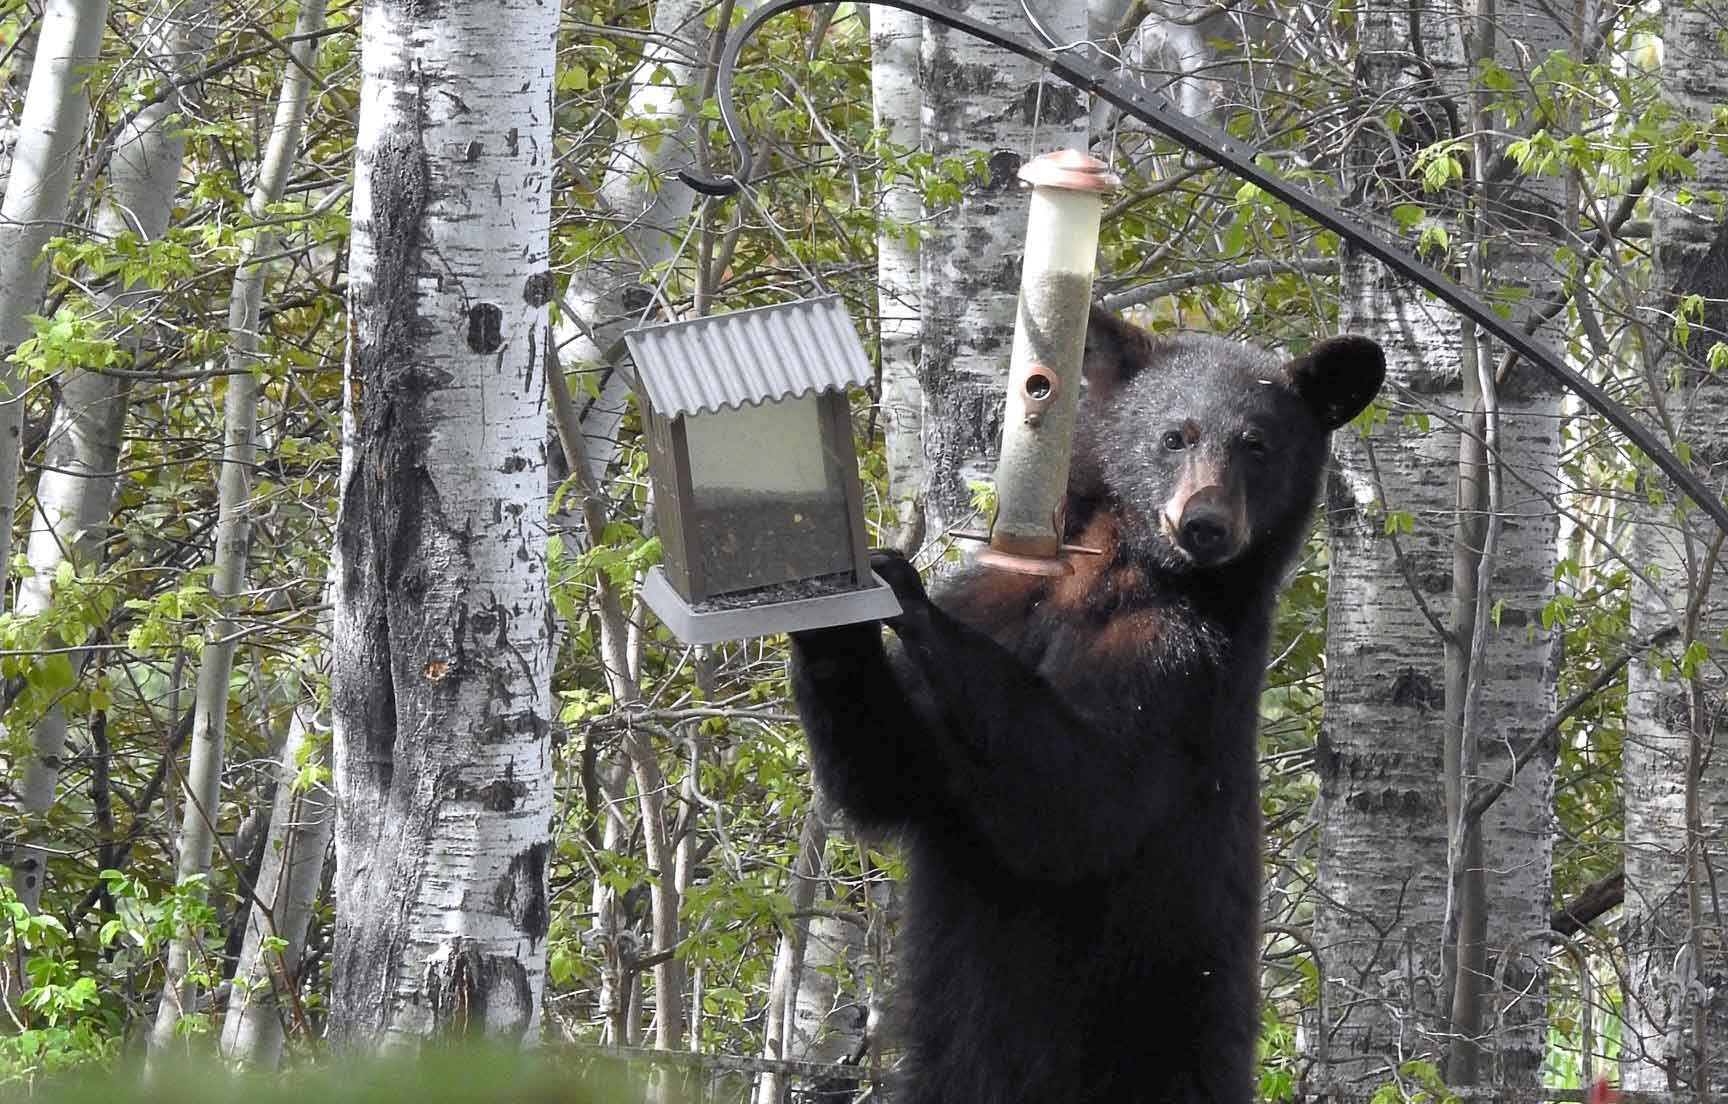 a black bear eating out of a hanging bird feeder